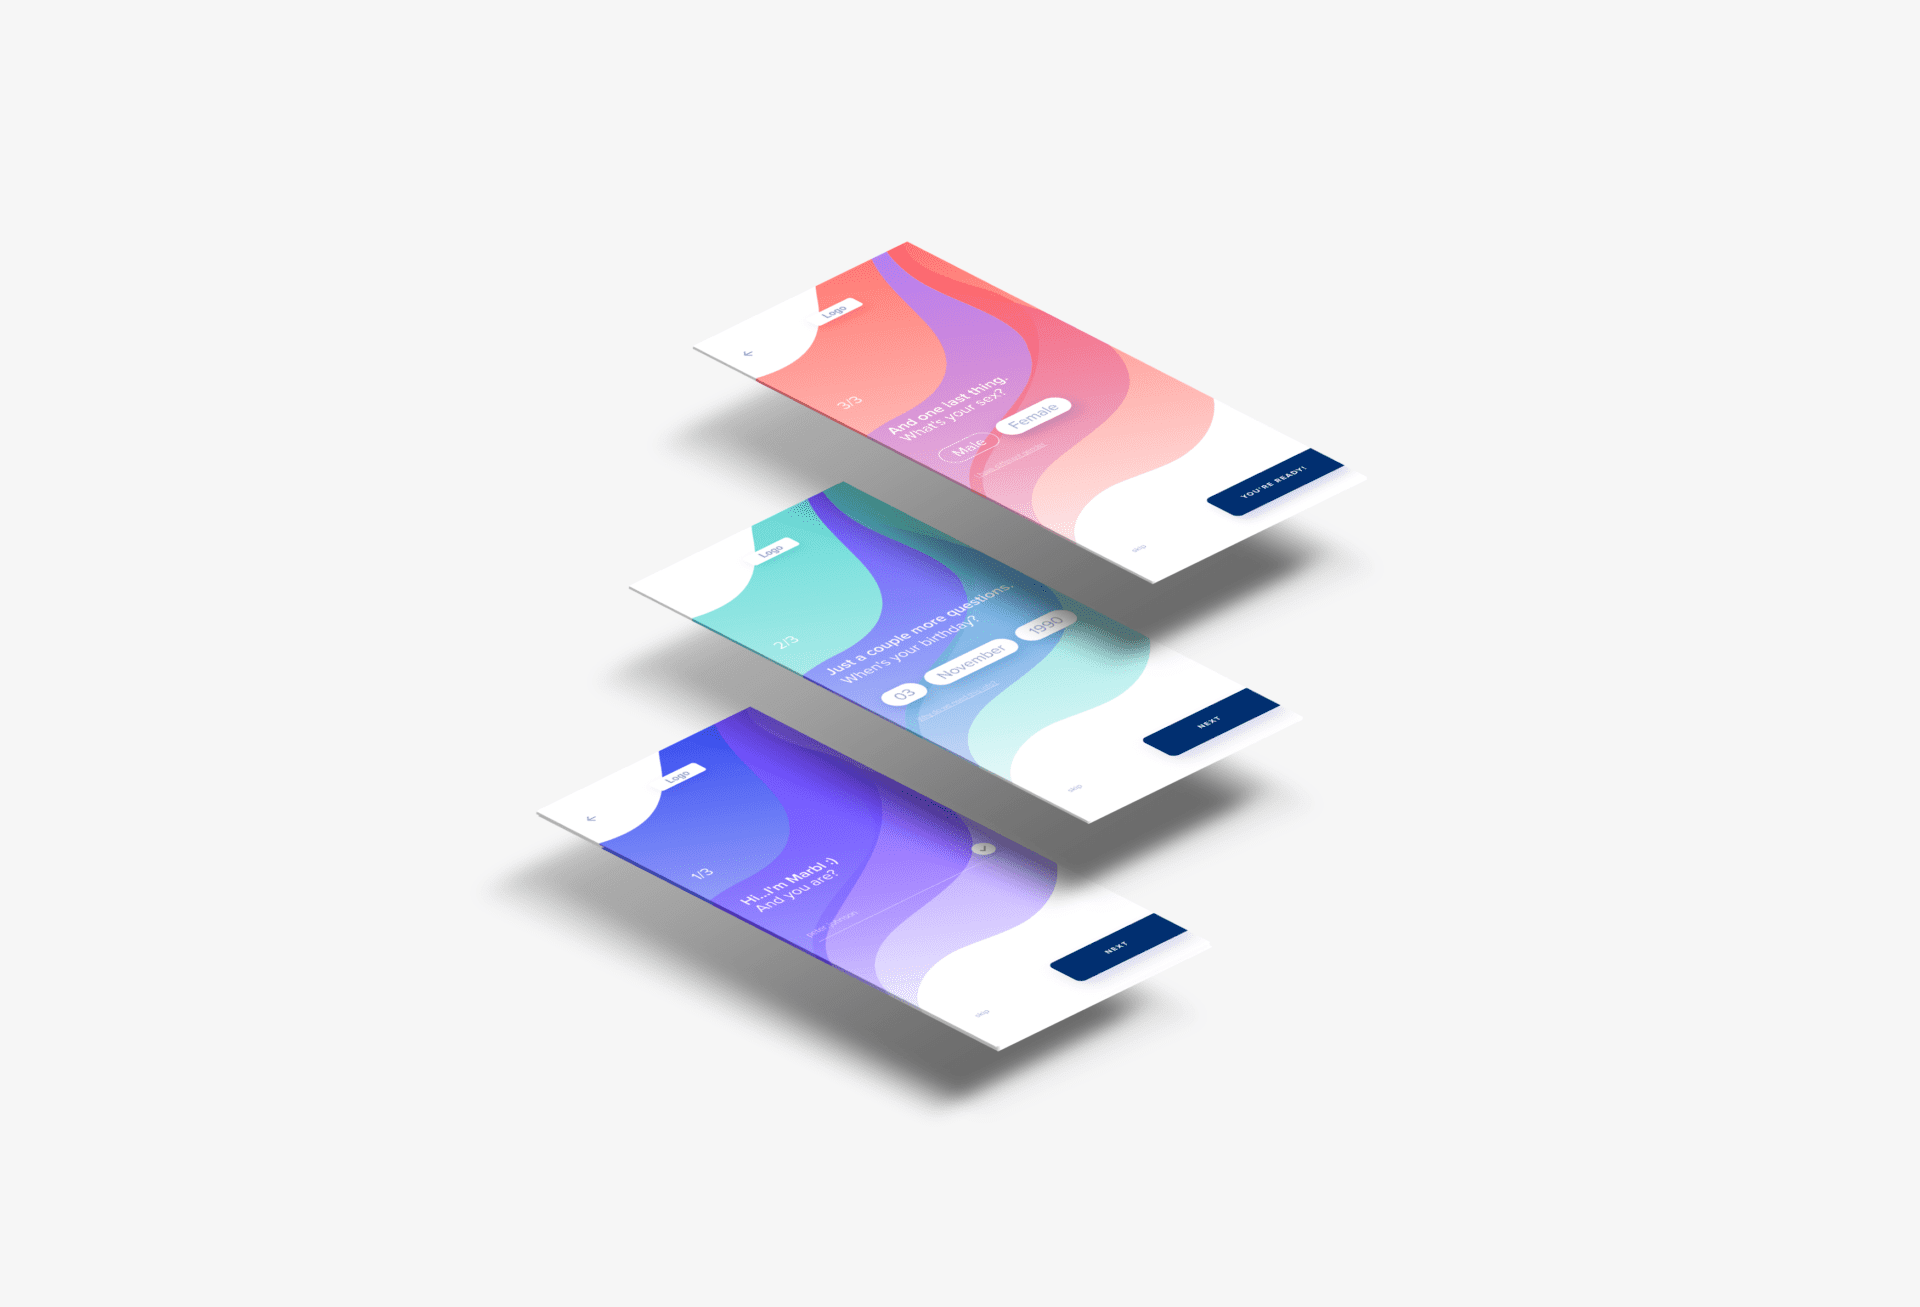 a graphic of three iphone app screens layered on top of each other with marbl app onboarding screens